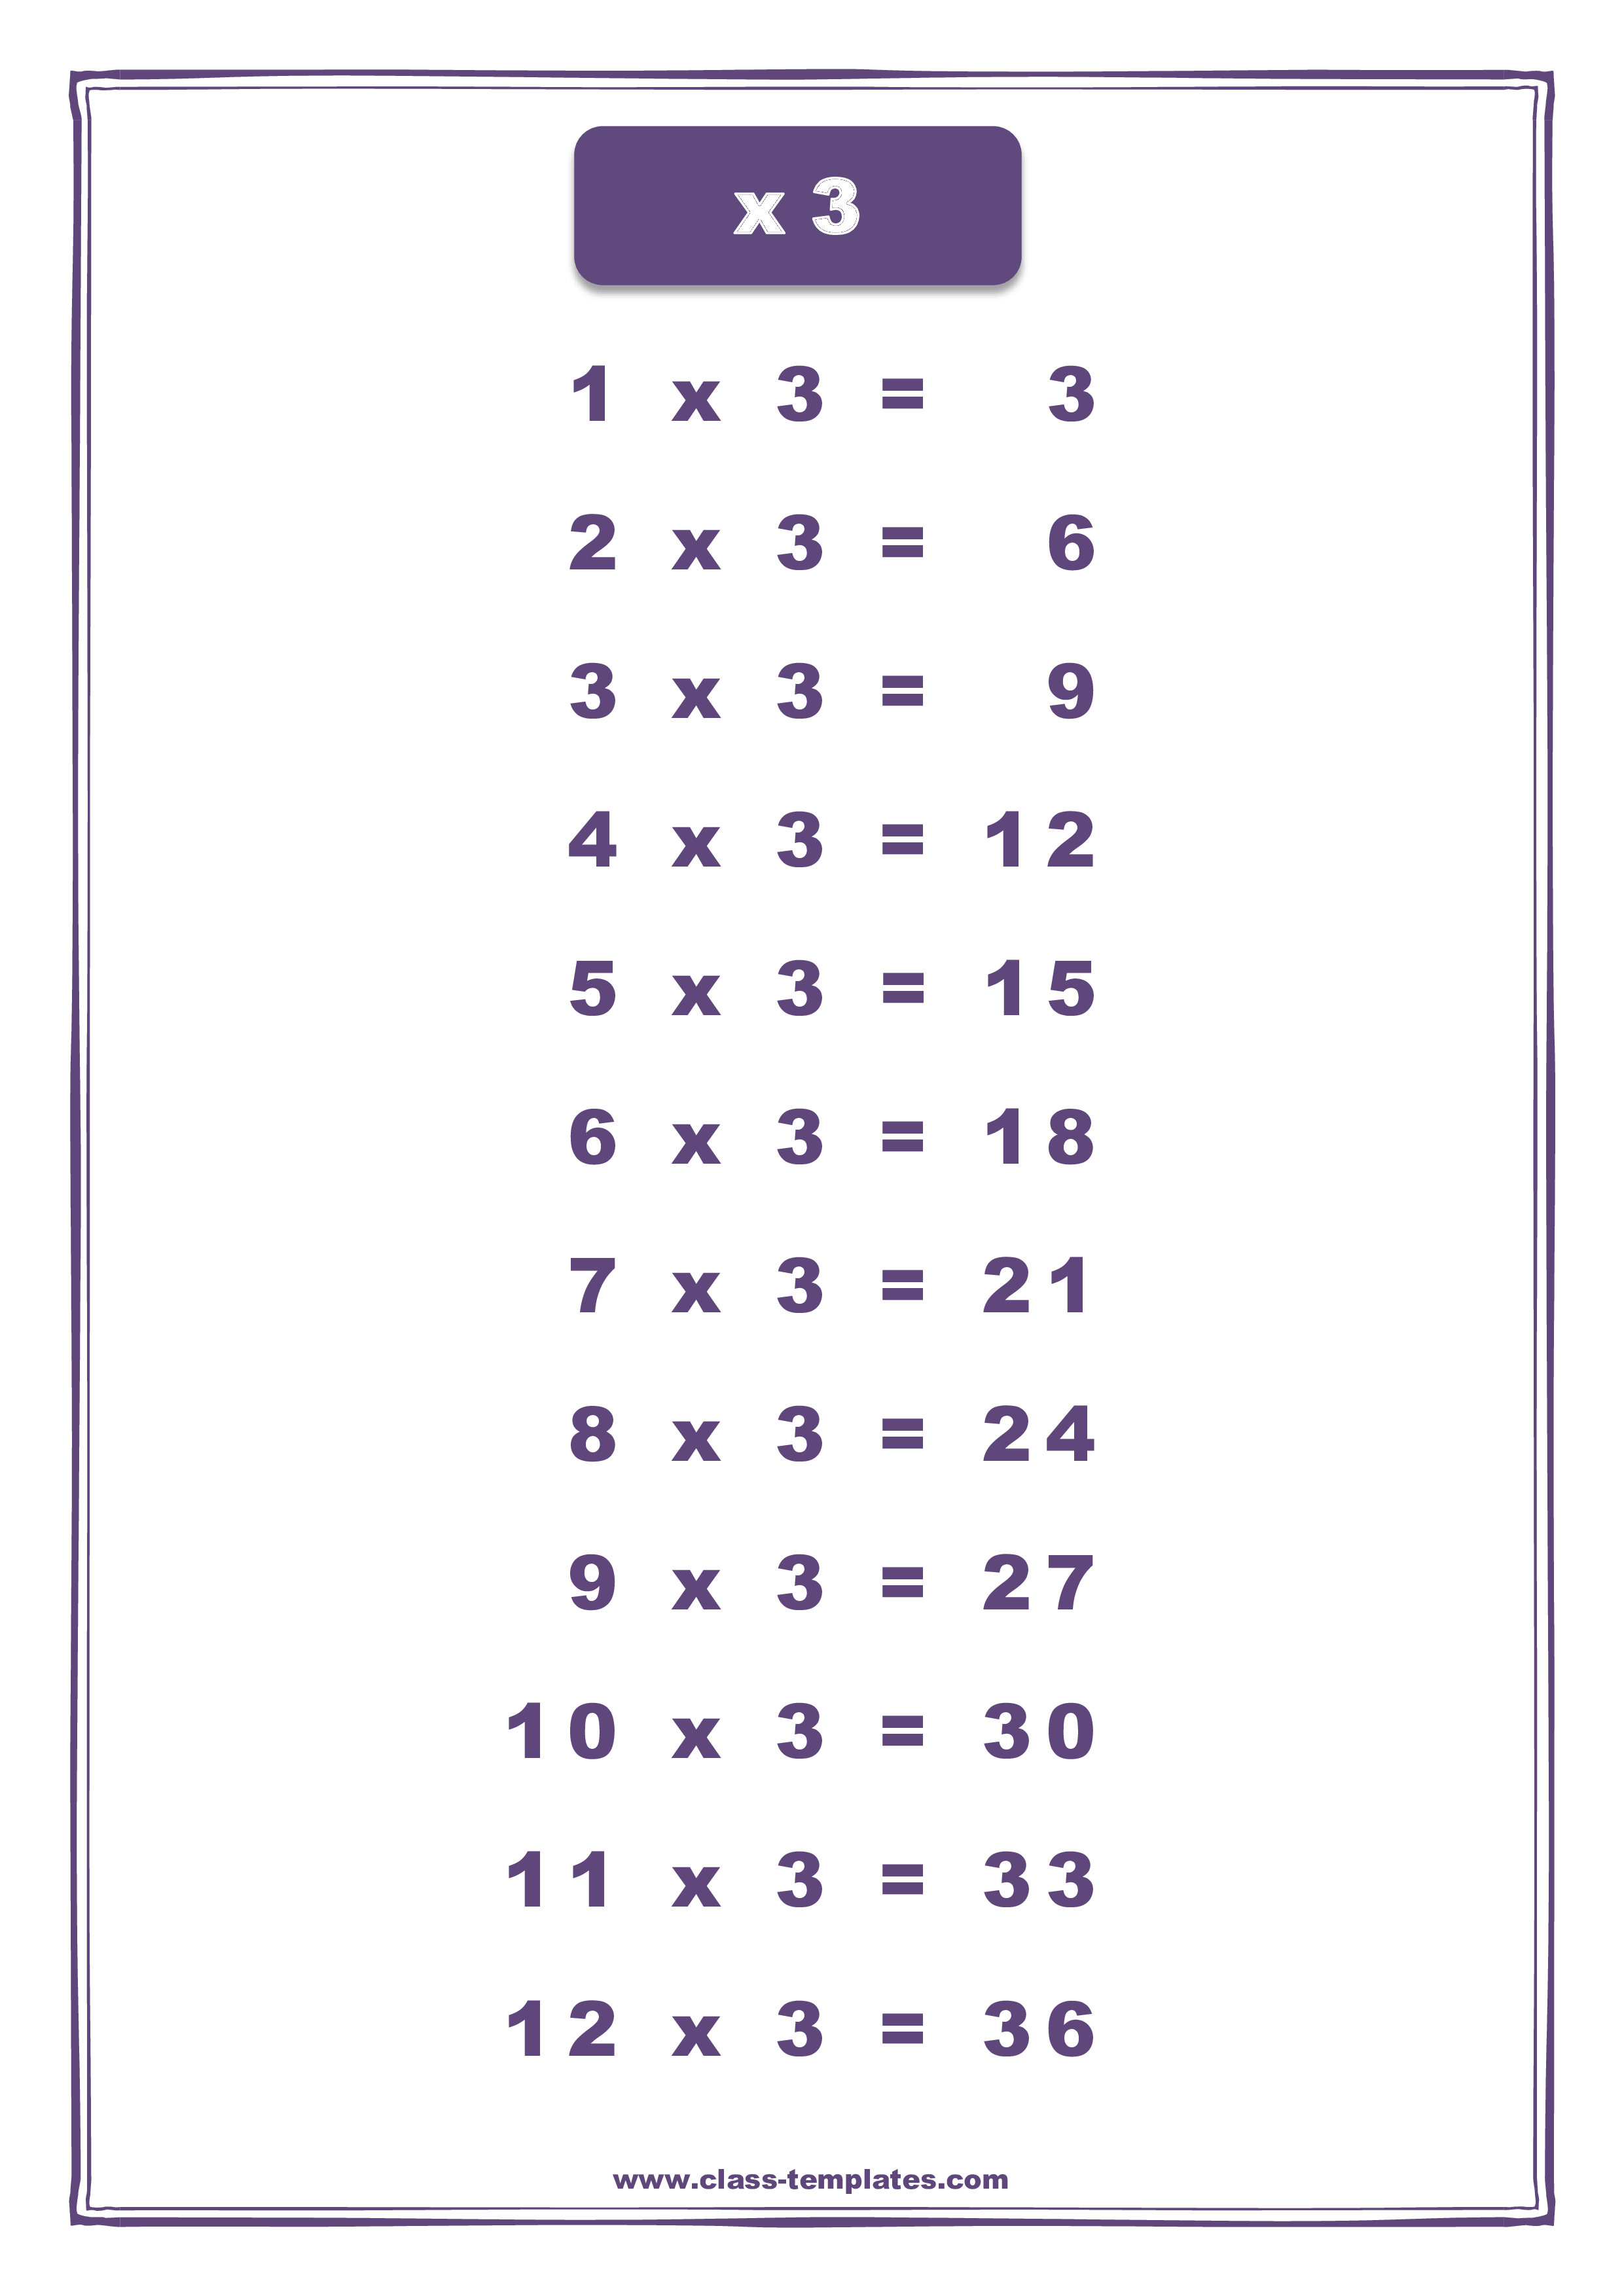 X3 Times Table Chart